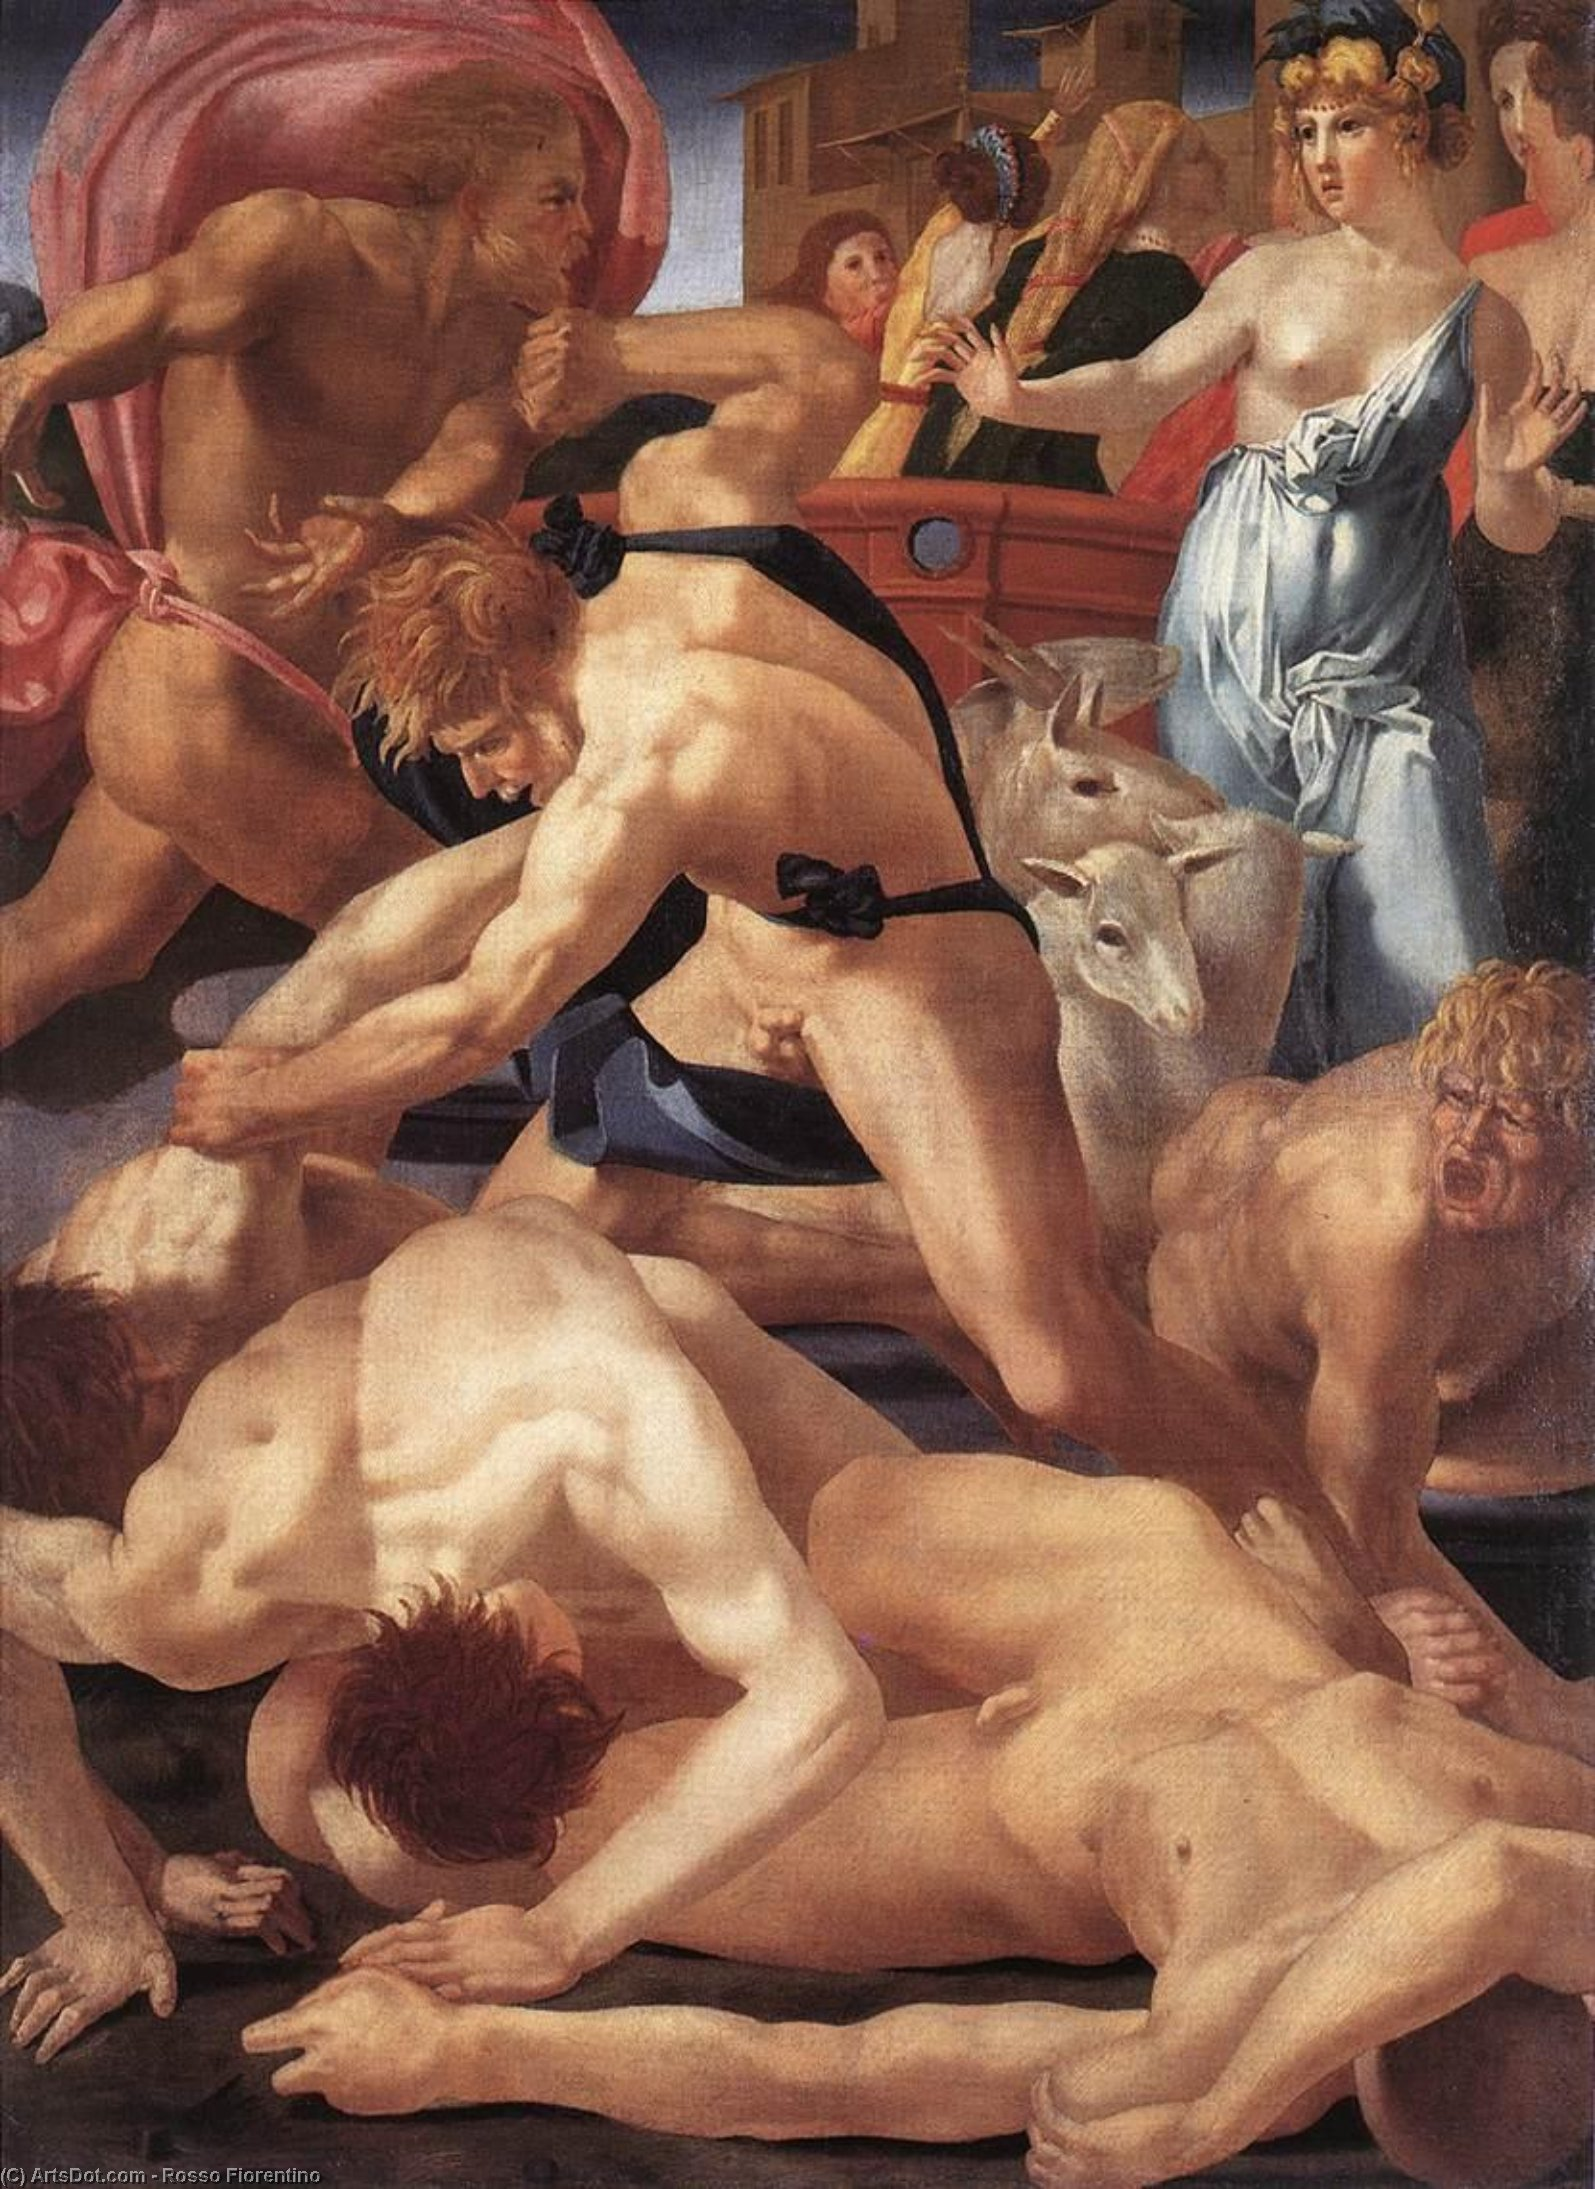 Wikioo.org - The Encyclopedia of Fine Arts - Painting, Artwork by Rosso Fiorentino - Moses and Jethro's daughters, - (160x117)